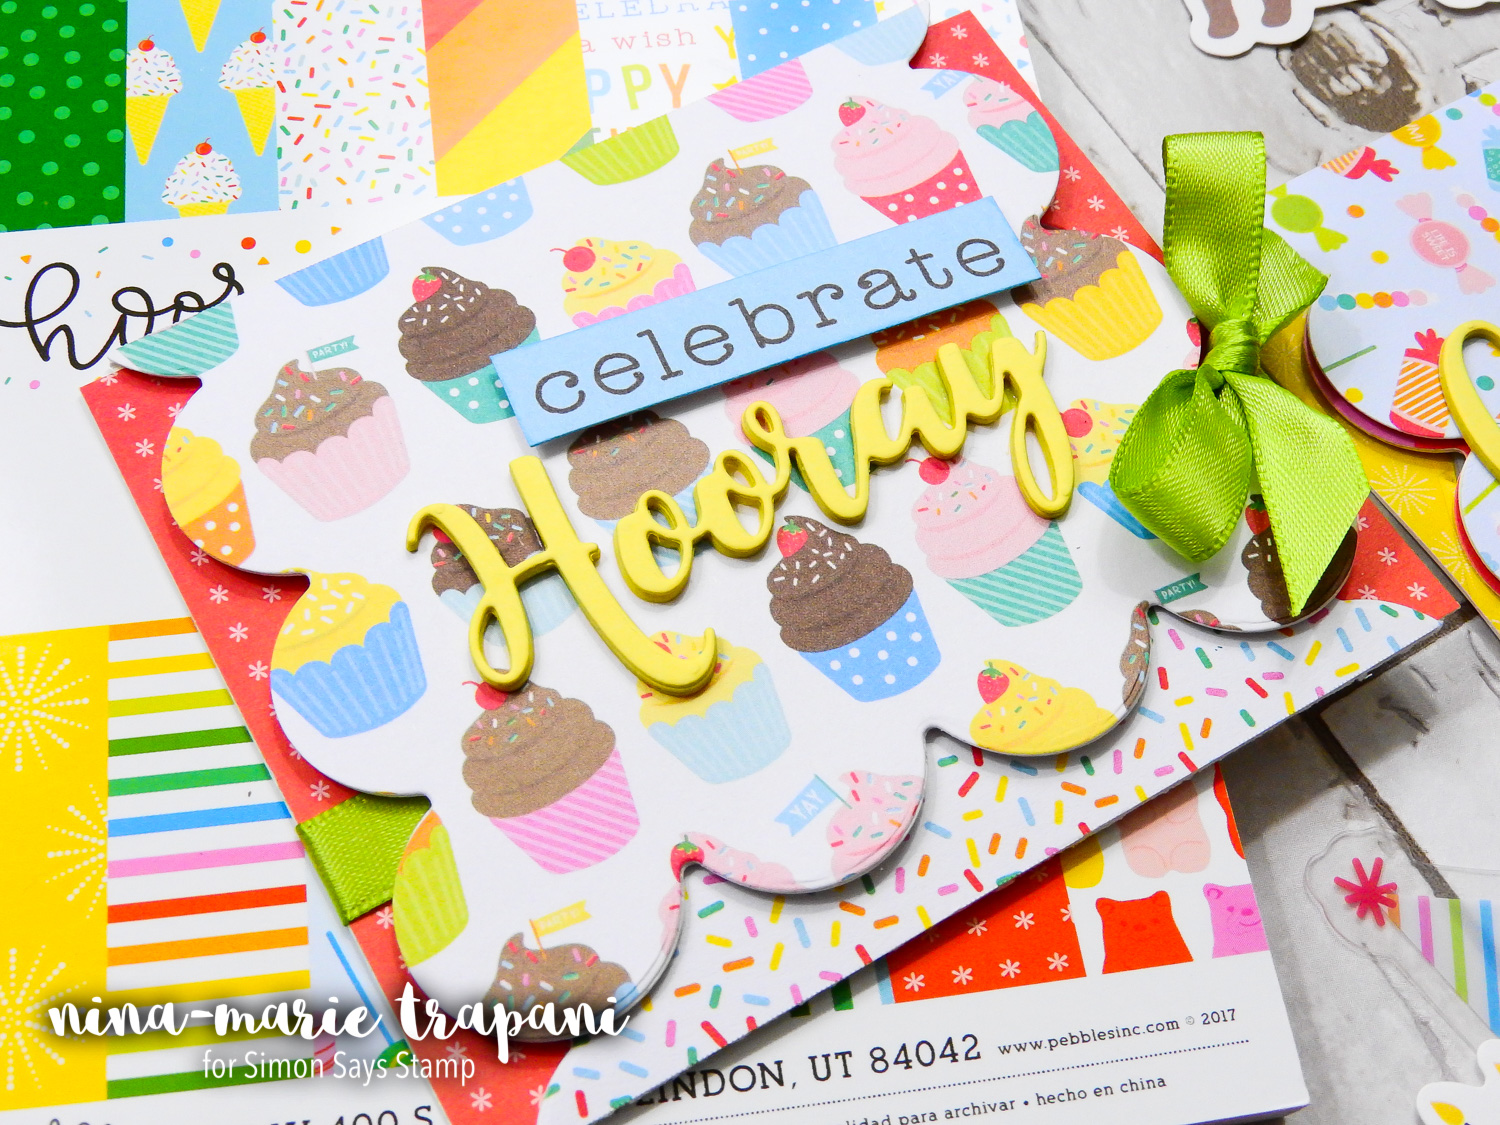 Trifold Cards Featuring Pebbles Happy Hooray Collection | Nina-Marie Design